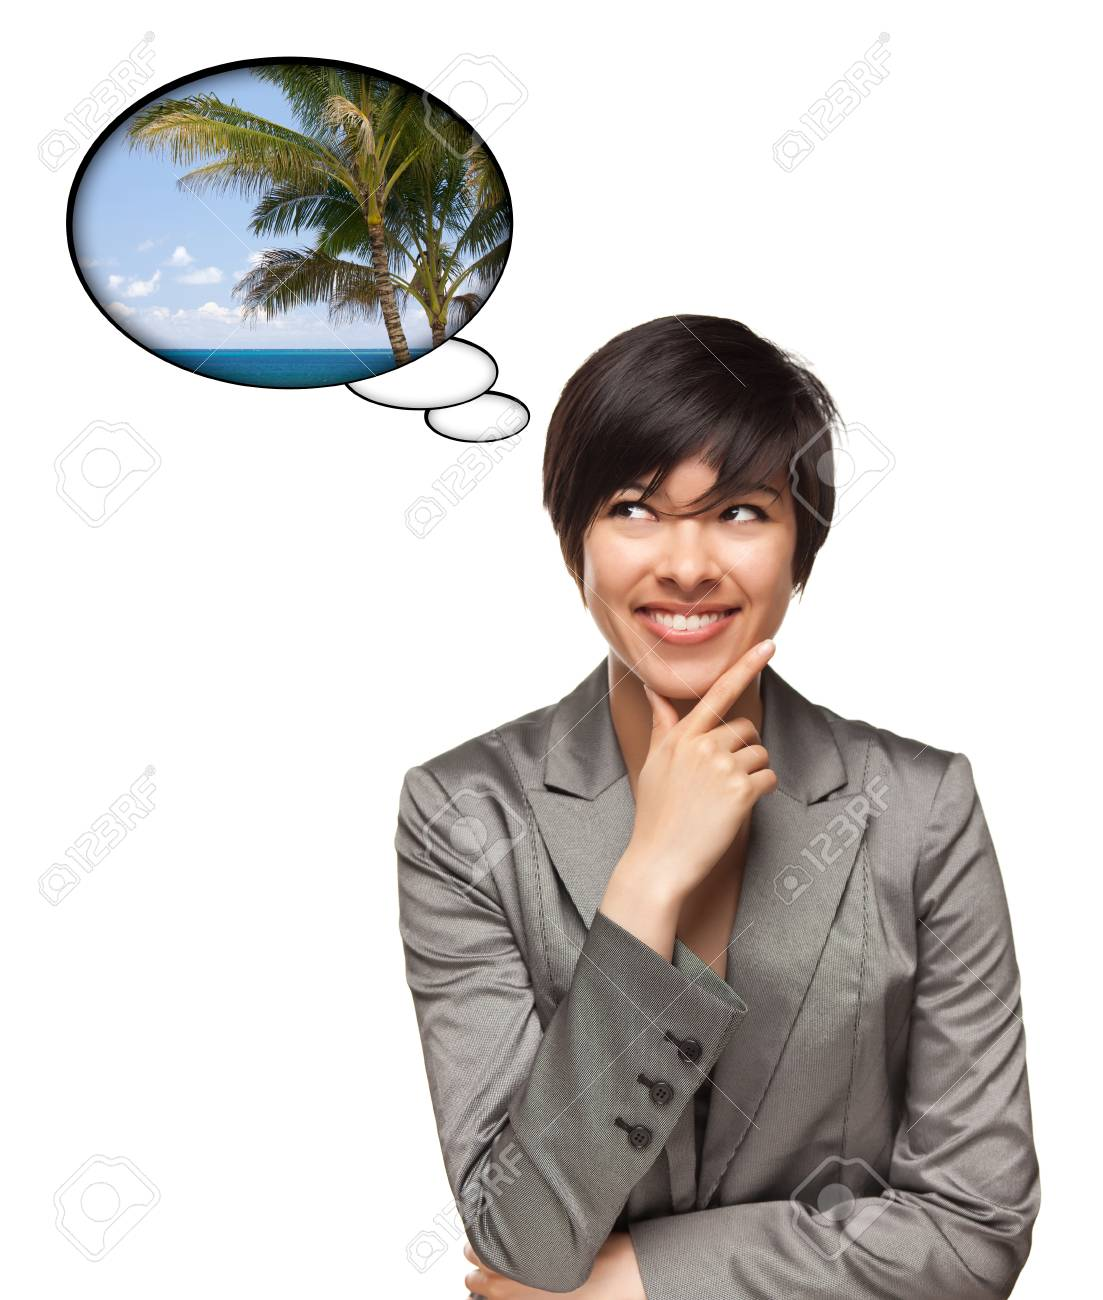 Beautiful Multiethnic Woman with Thought Bubbles of a Tropical Place Isolated on a White Background. Stock Photo - 7872983